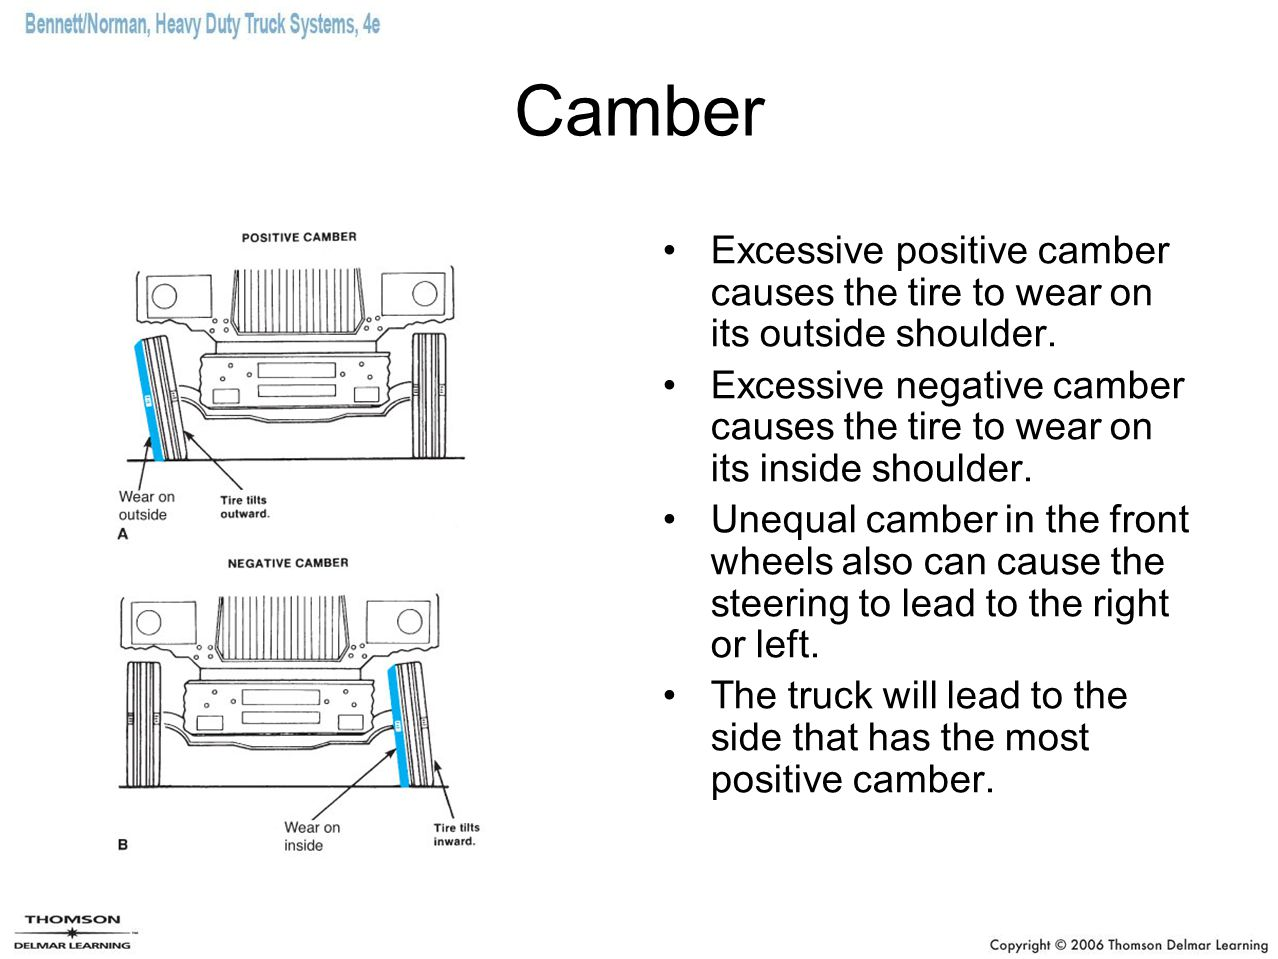 Camber Excessive positive camber causes the tire to wear on its outside shoulder.